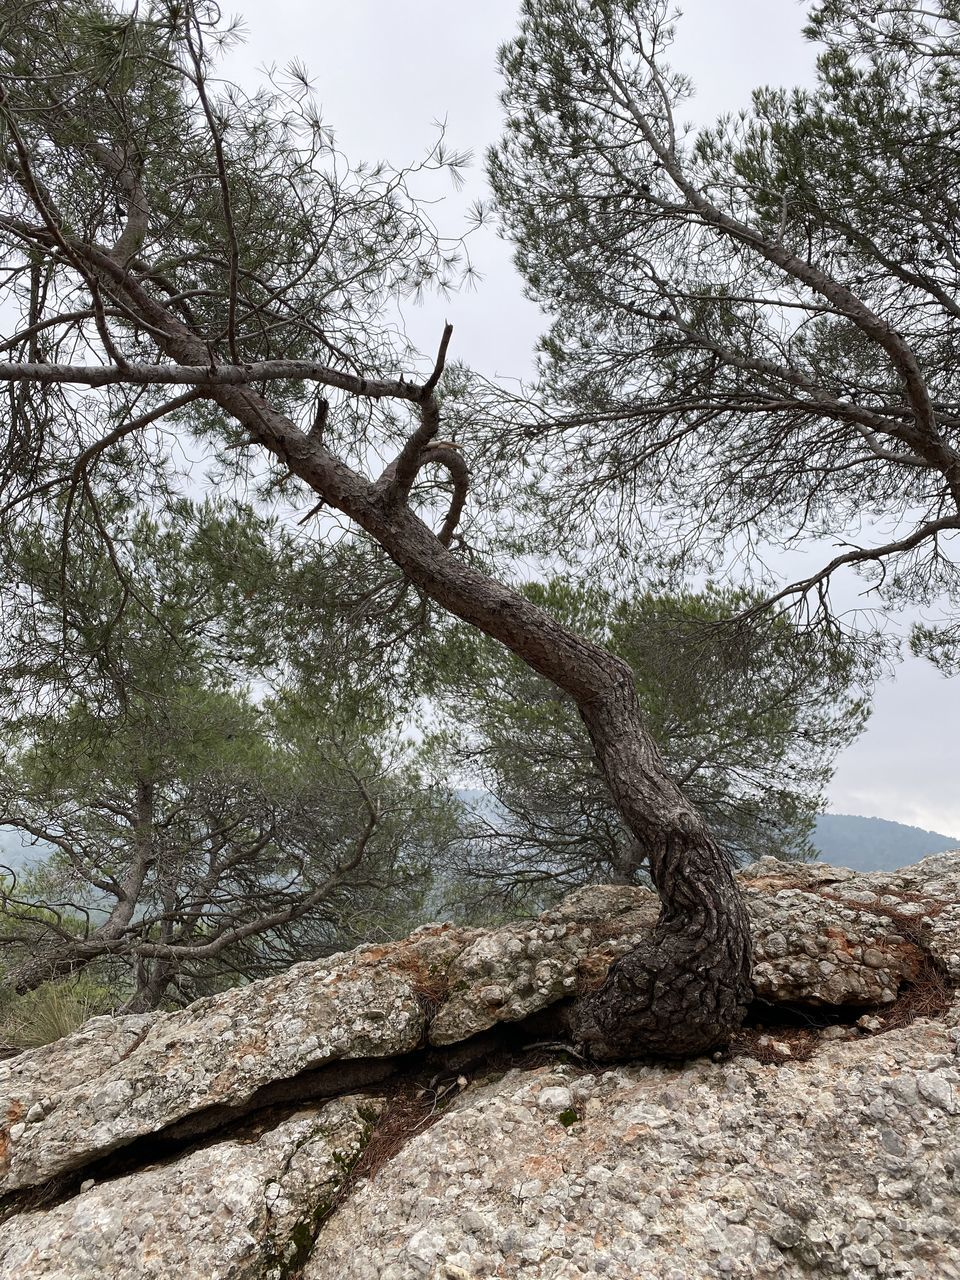 tree, plant, nature, no people, sky, growth, tranquility, branch, beauty in nature, day, rock, solid, tranquil scene, rock - object, tree trunk, outdoors, trunk, land, scenics - nature, focus on foreground